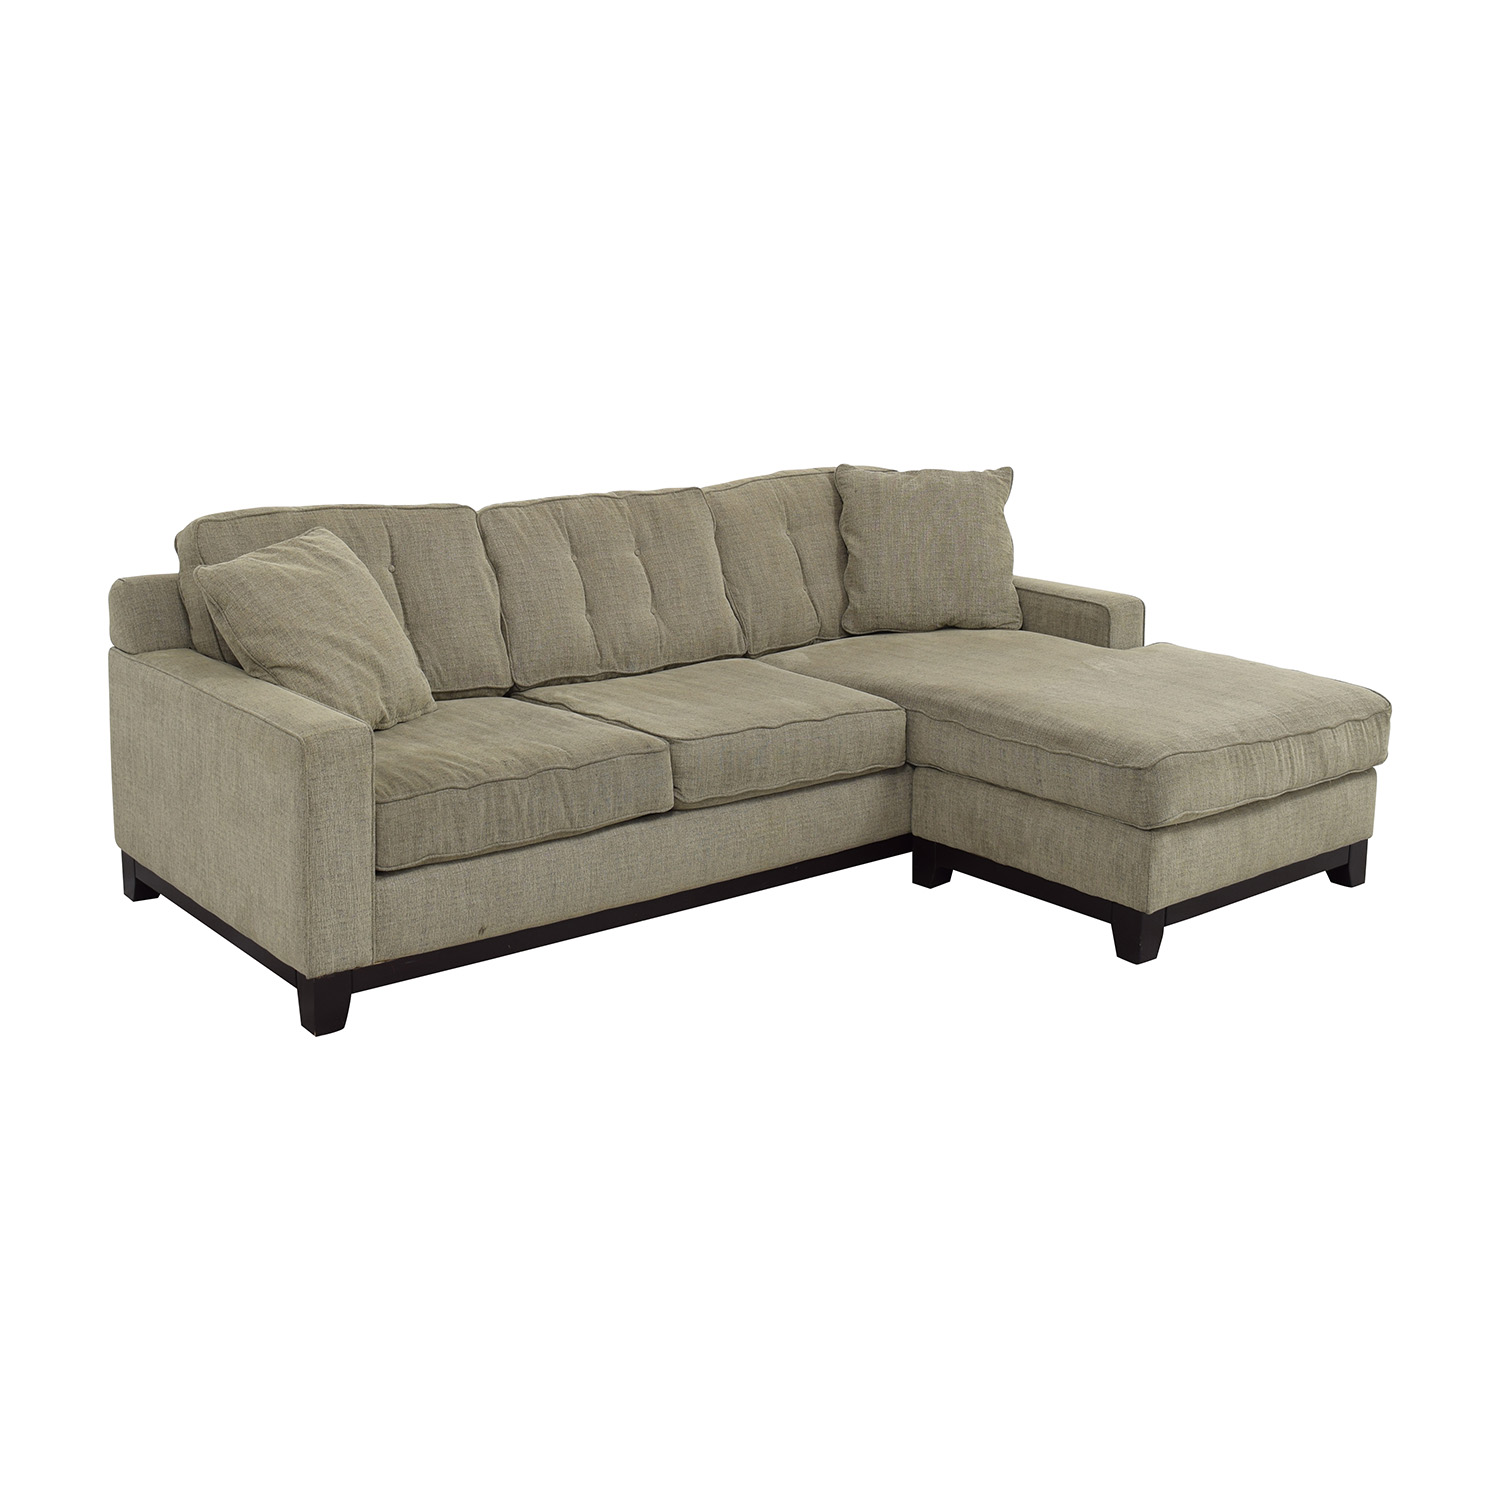 61 off grey l shaped tufted sectional with right chaise sofas. Black Bedroom Furniture Sets. Home Design Ideas